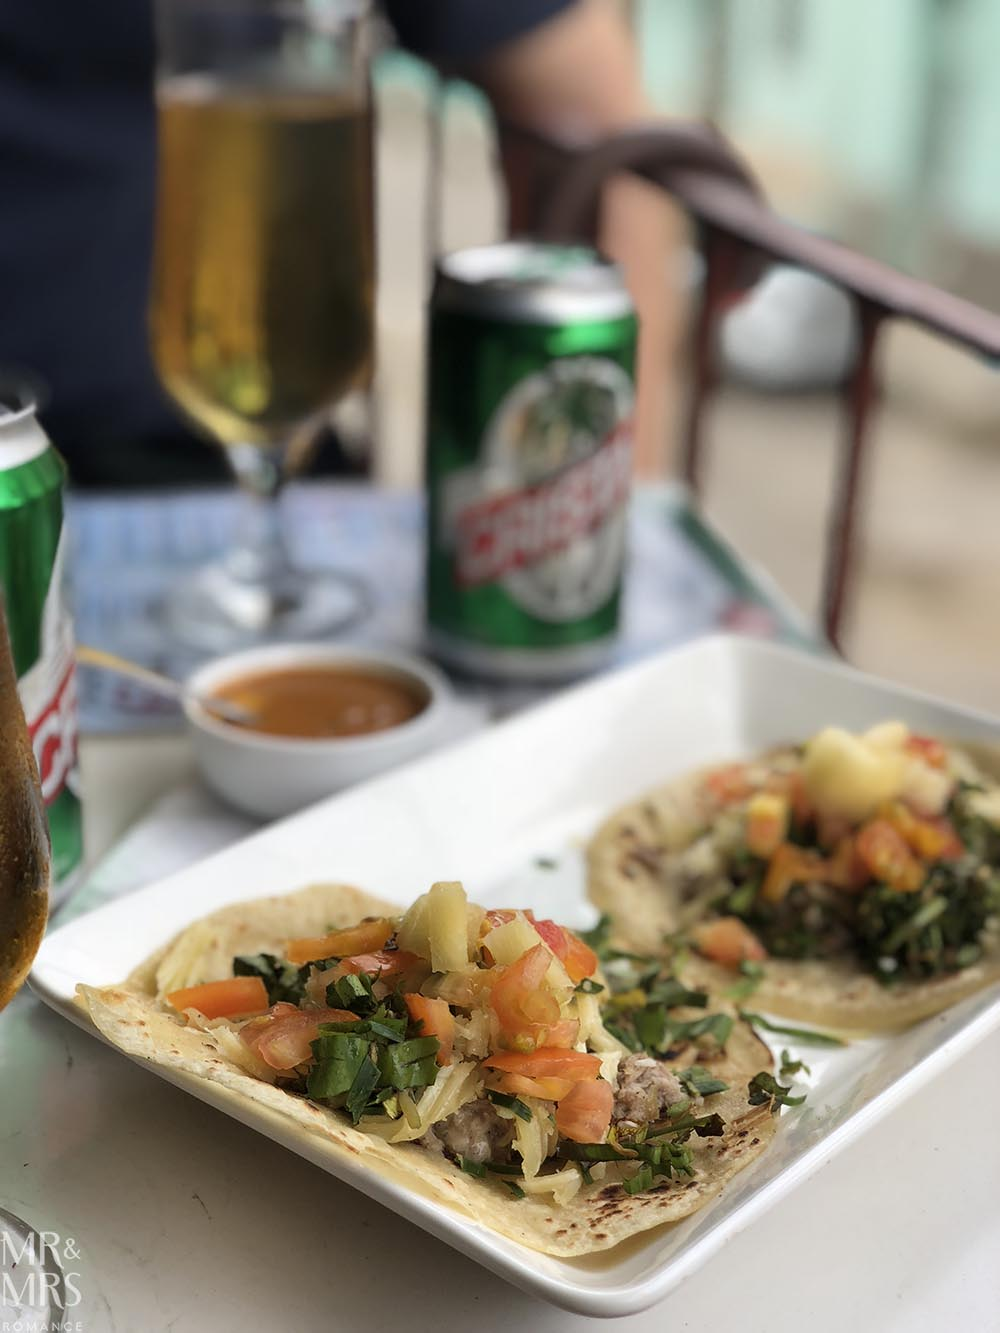 Why we owe Cuba an apology - fish tacos